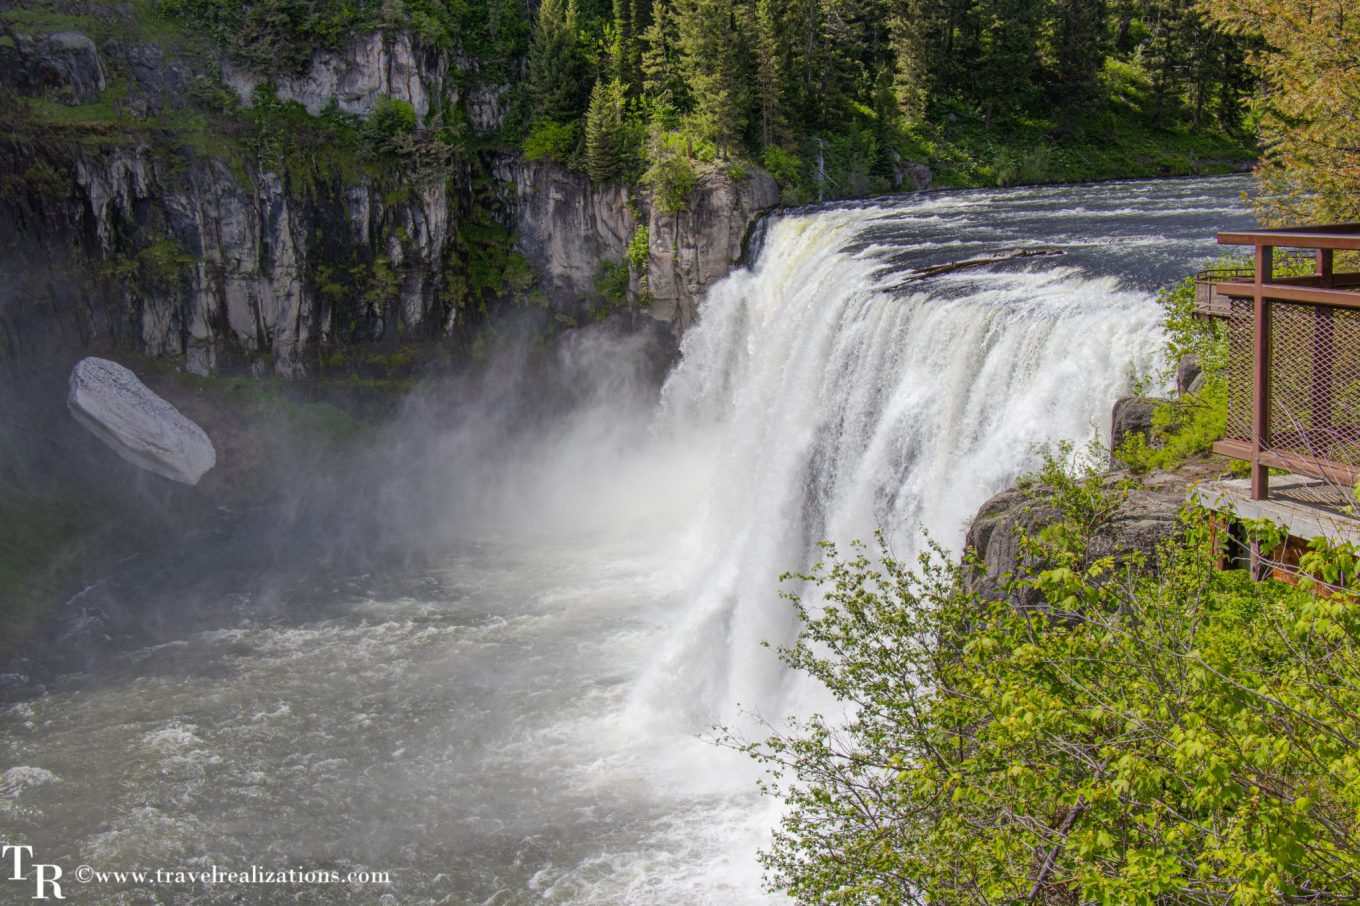 Mesa Falls in Idaho on the way to Yellowstone National Park